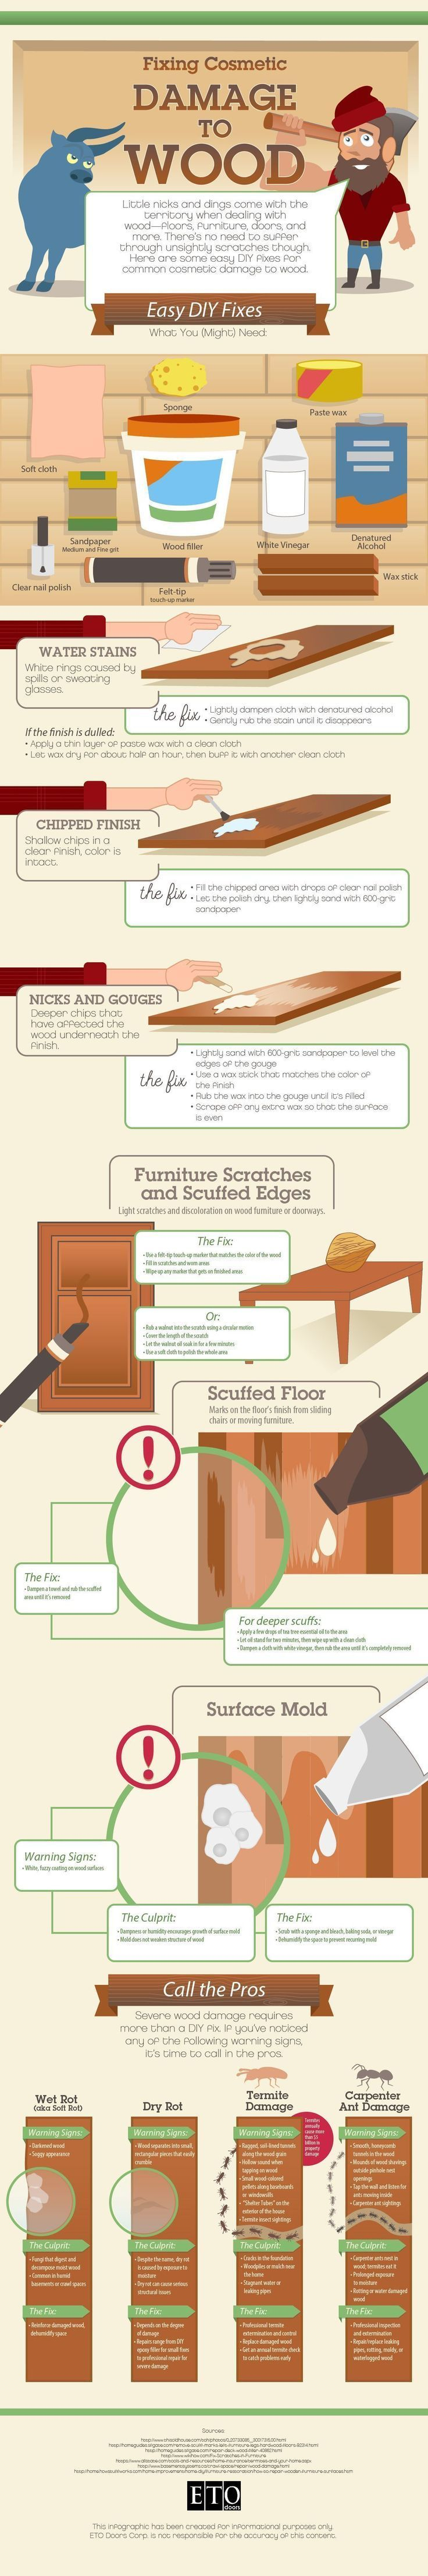 hight resolution of fixing cosmetic damage to wood infographic woodworkinginfographic diy ideas in 2018 pinterest houtbewerking hout and houtwerk